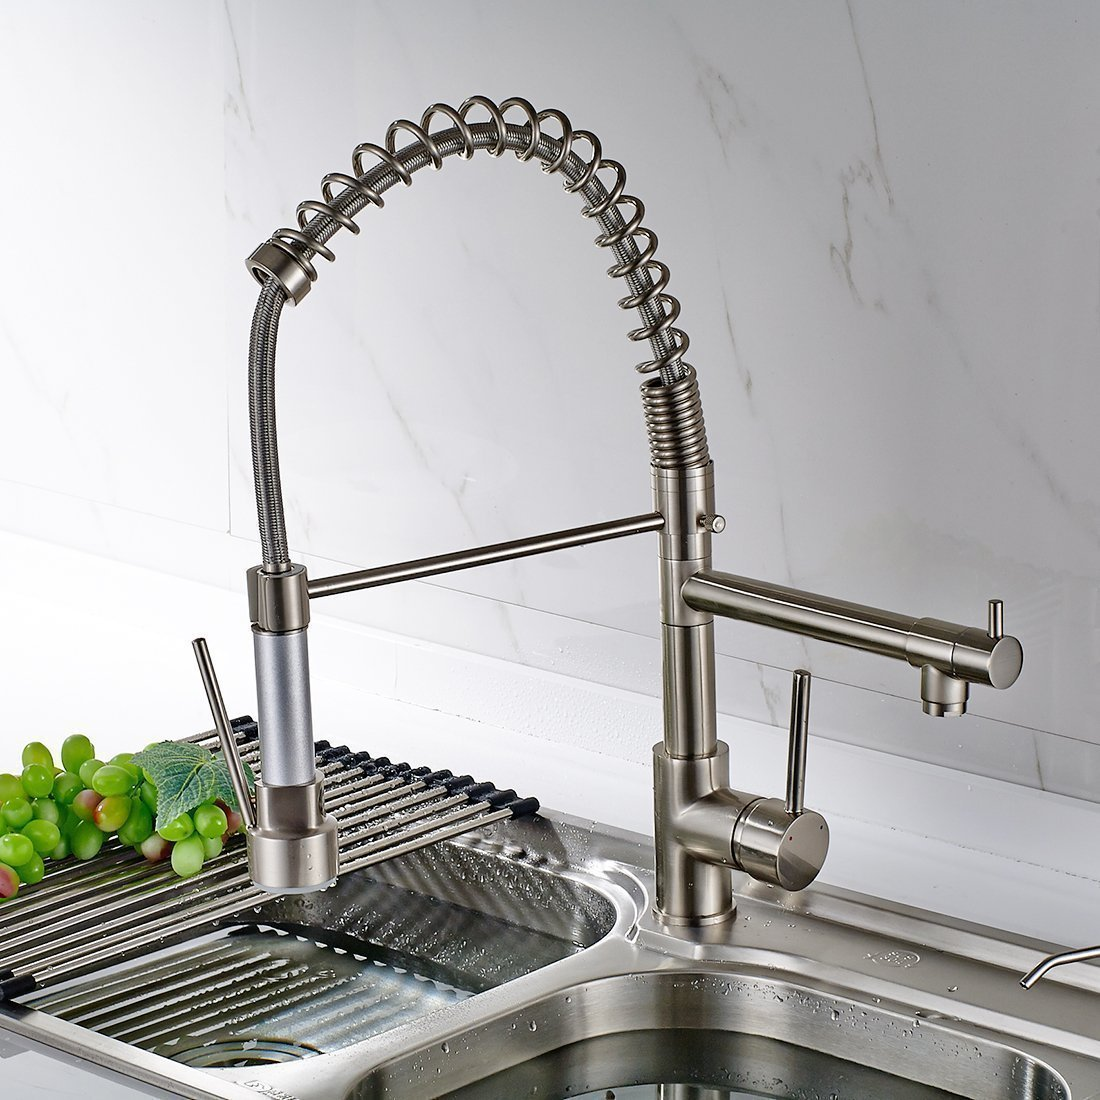 Solid Brass Spring Kitchen Faucet Polished Nickel Finish